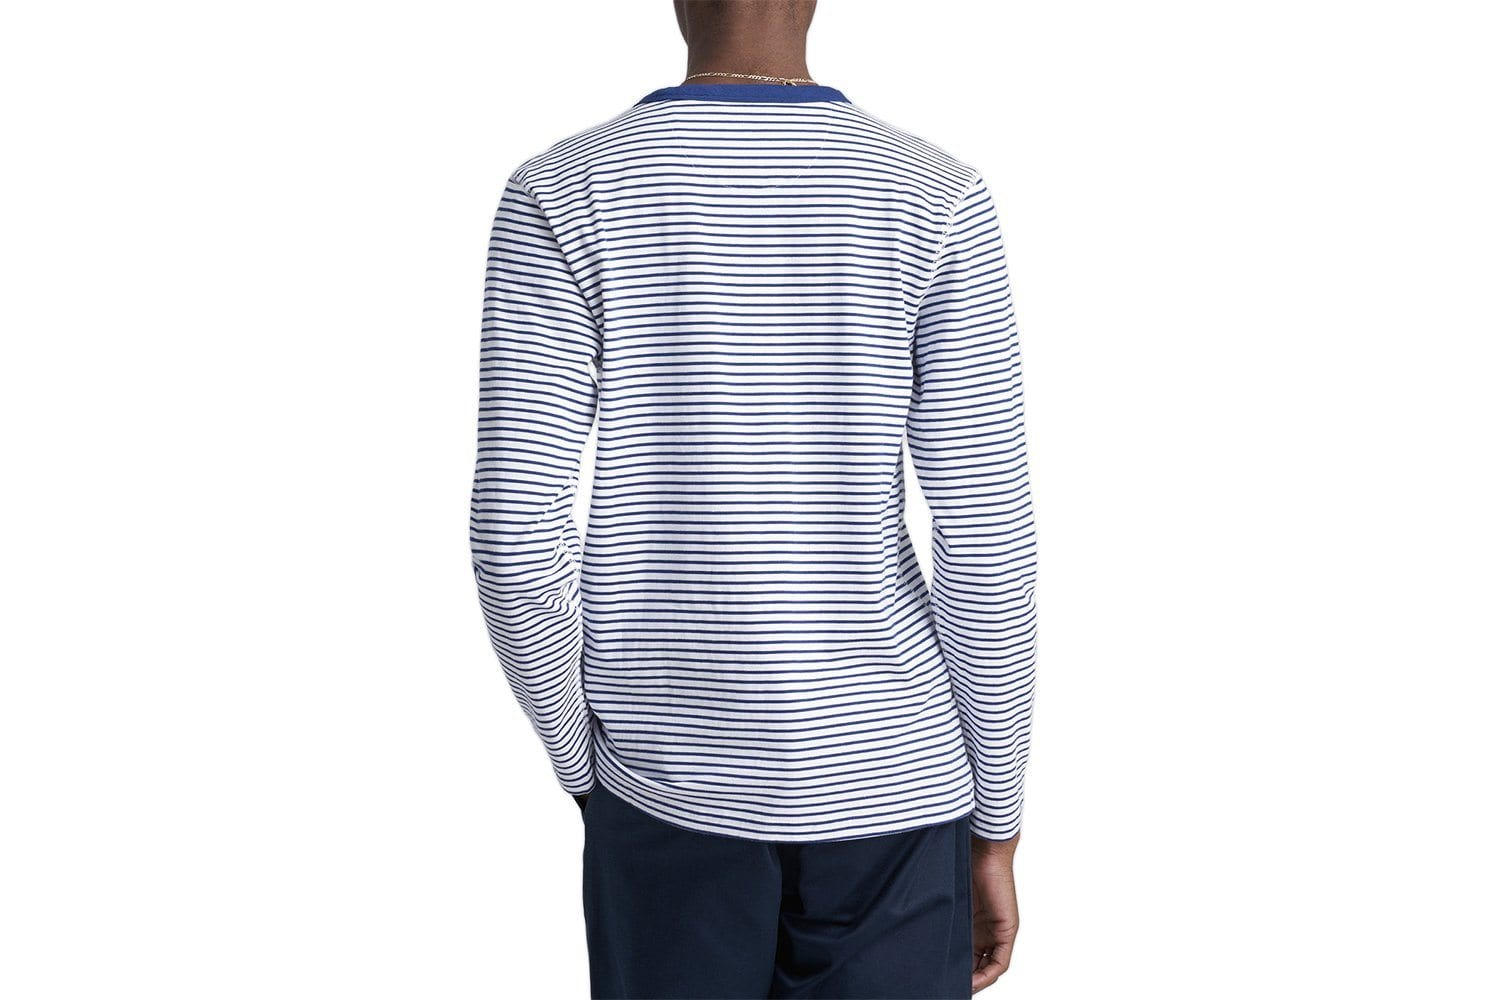 ALEK FEEDER STRIPE L/S TEE - S4700 MENS SOFTGOODS SATURDAYS NYC